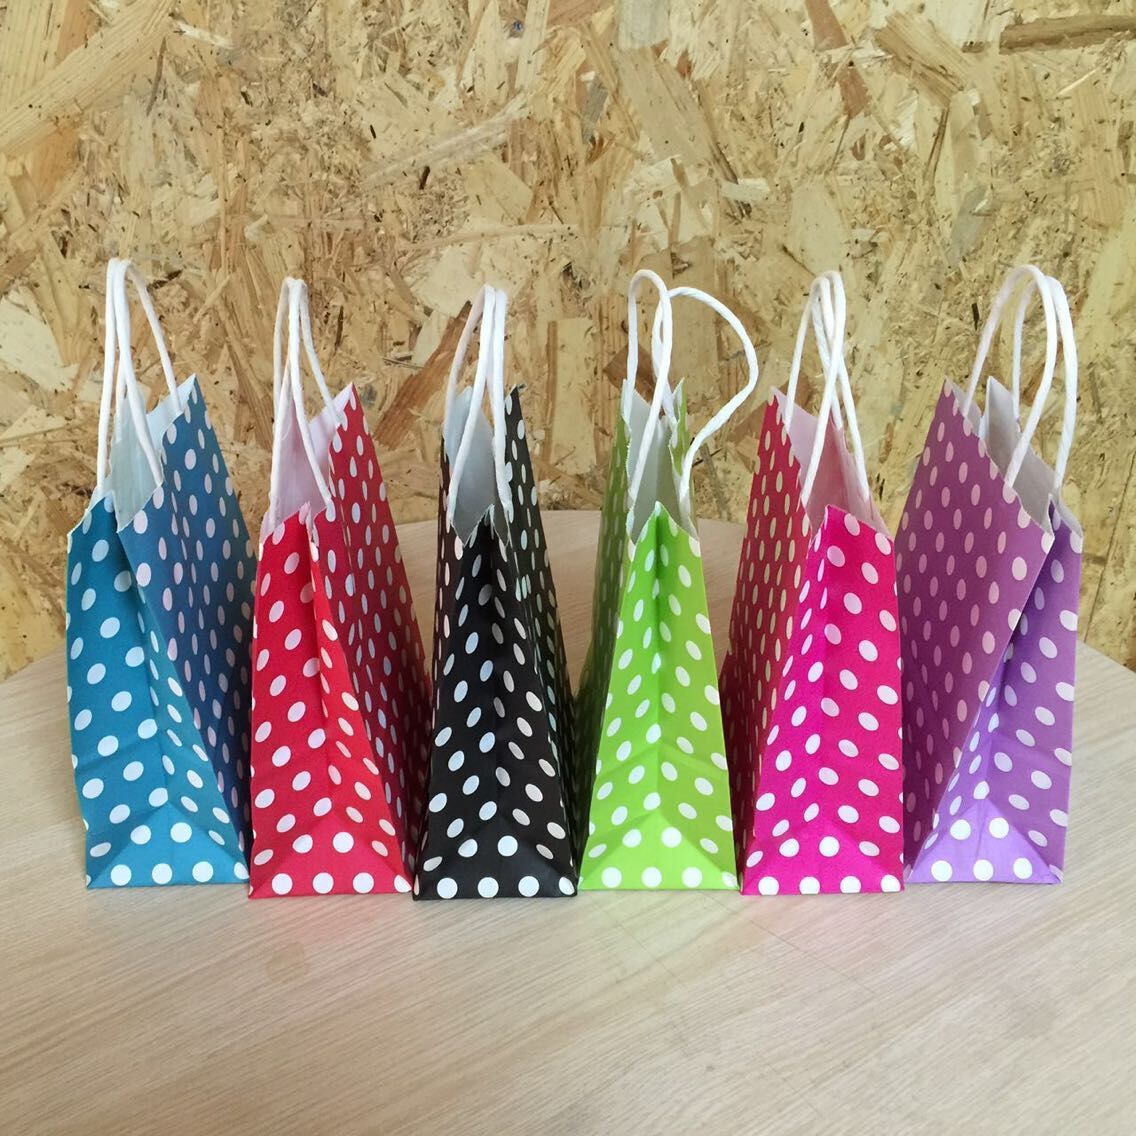 21*15*8cm Polka Dot kraft paper gift bag/Festival Paper bag with handles / Fashionable jewellery bags/Excellent Quality(China (Mainland))